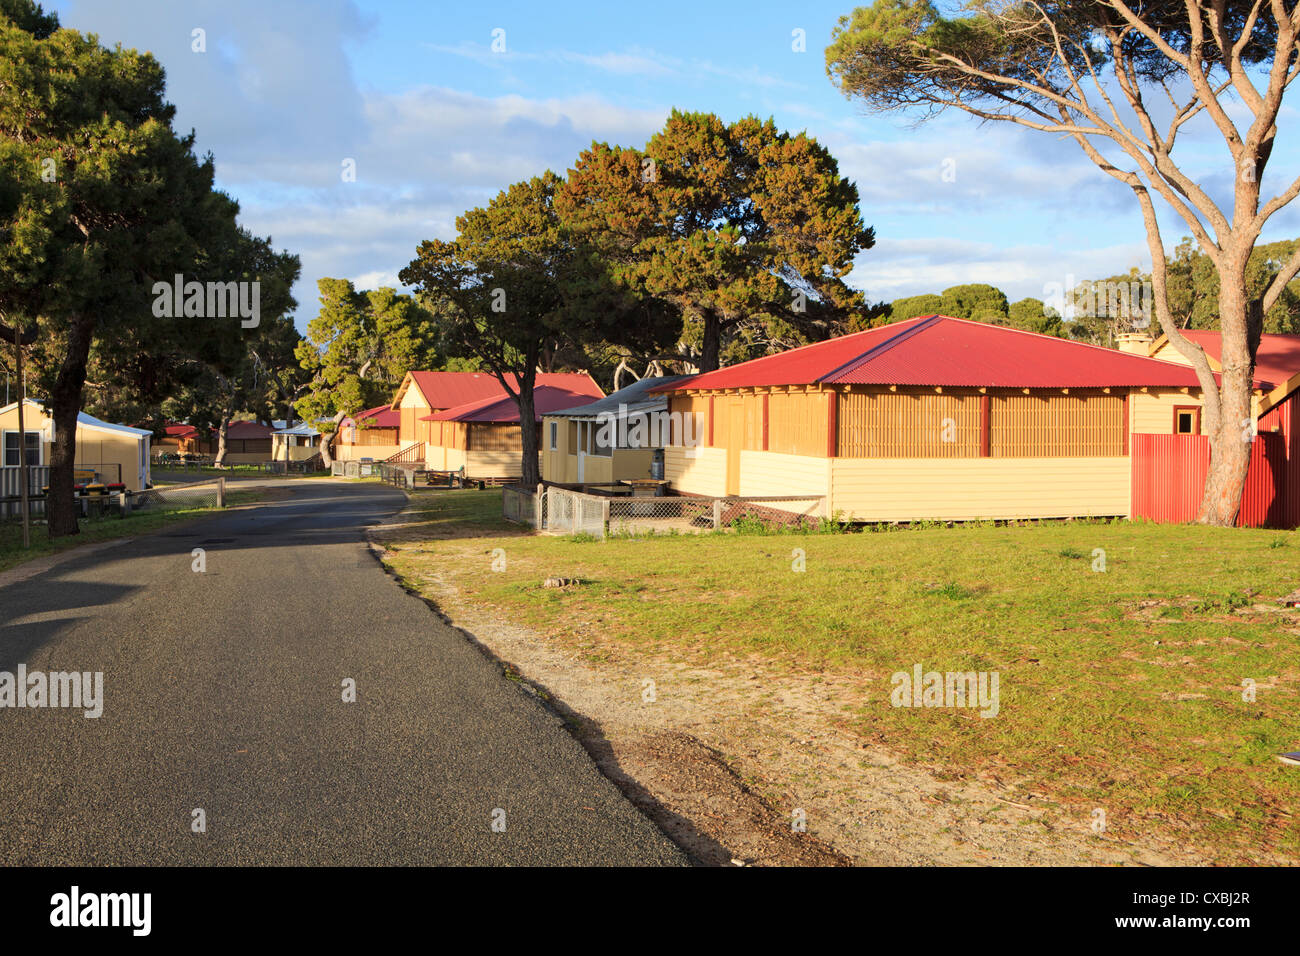 Bungalow accommodation in Thomson Bay. - Stock Image